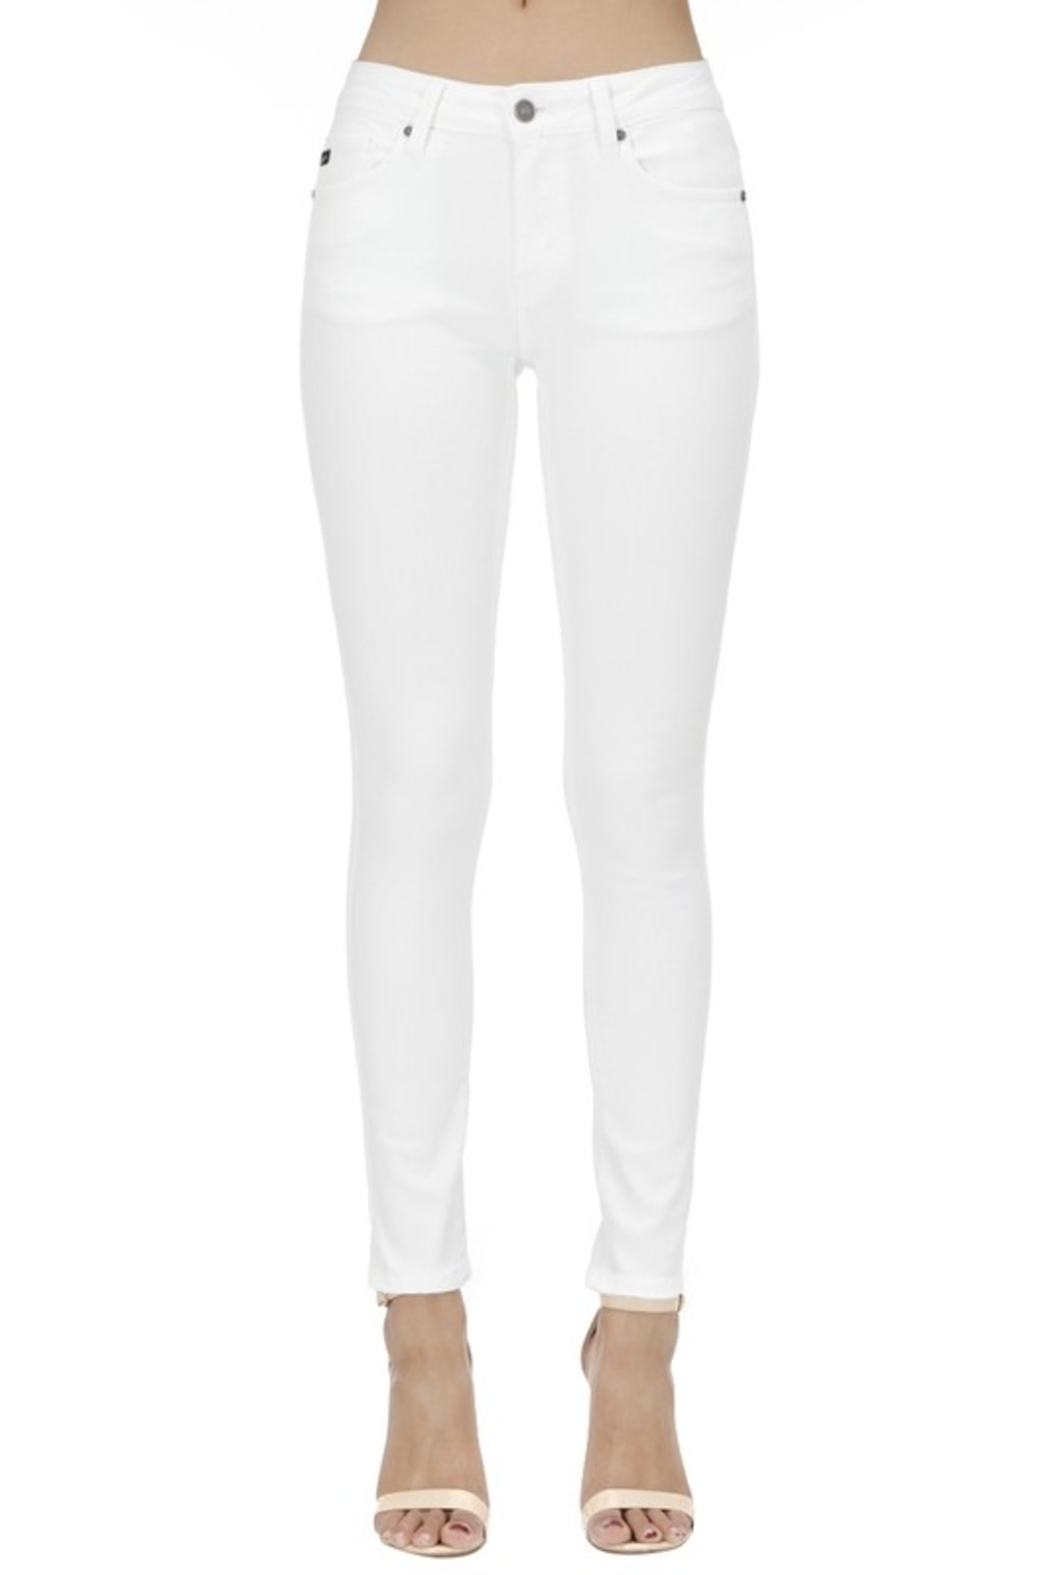 KanCan Mid Rise Ankle Skinny jean (KC7085WT) - Front Cropped Image